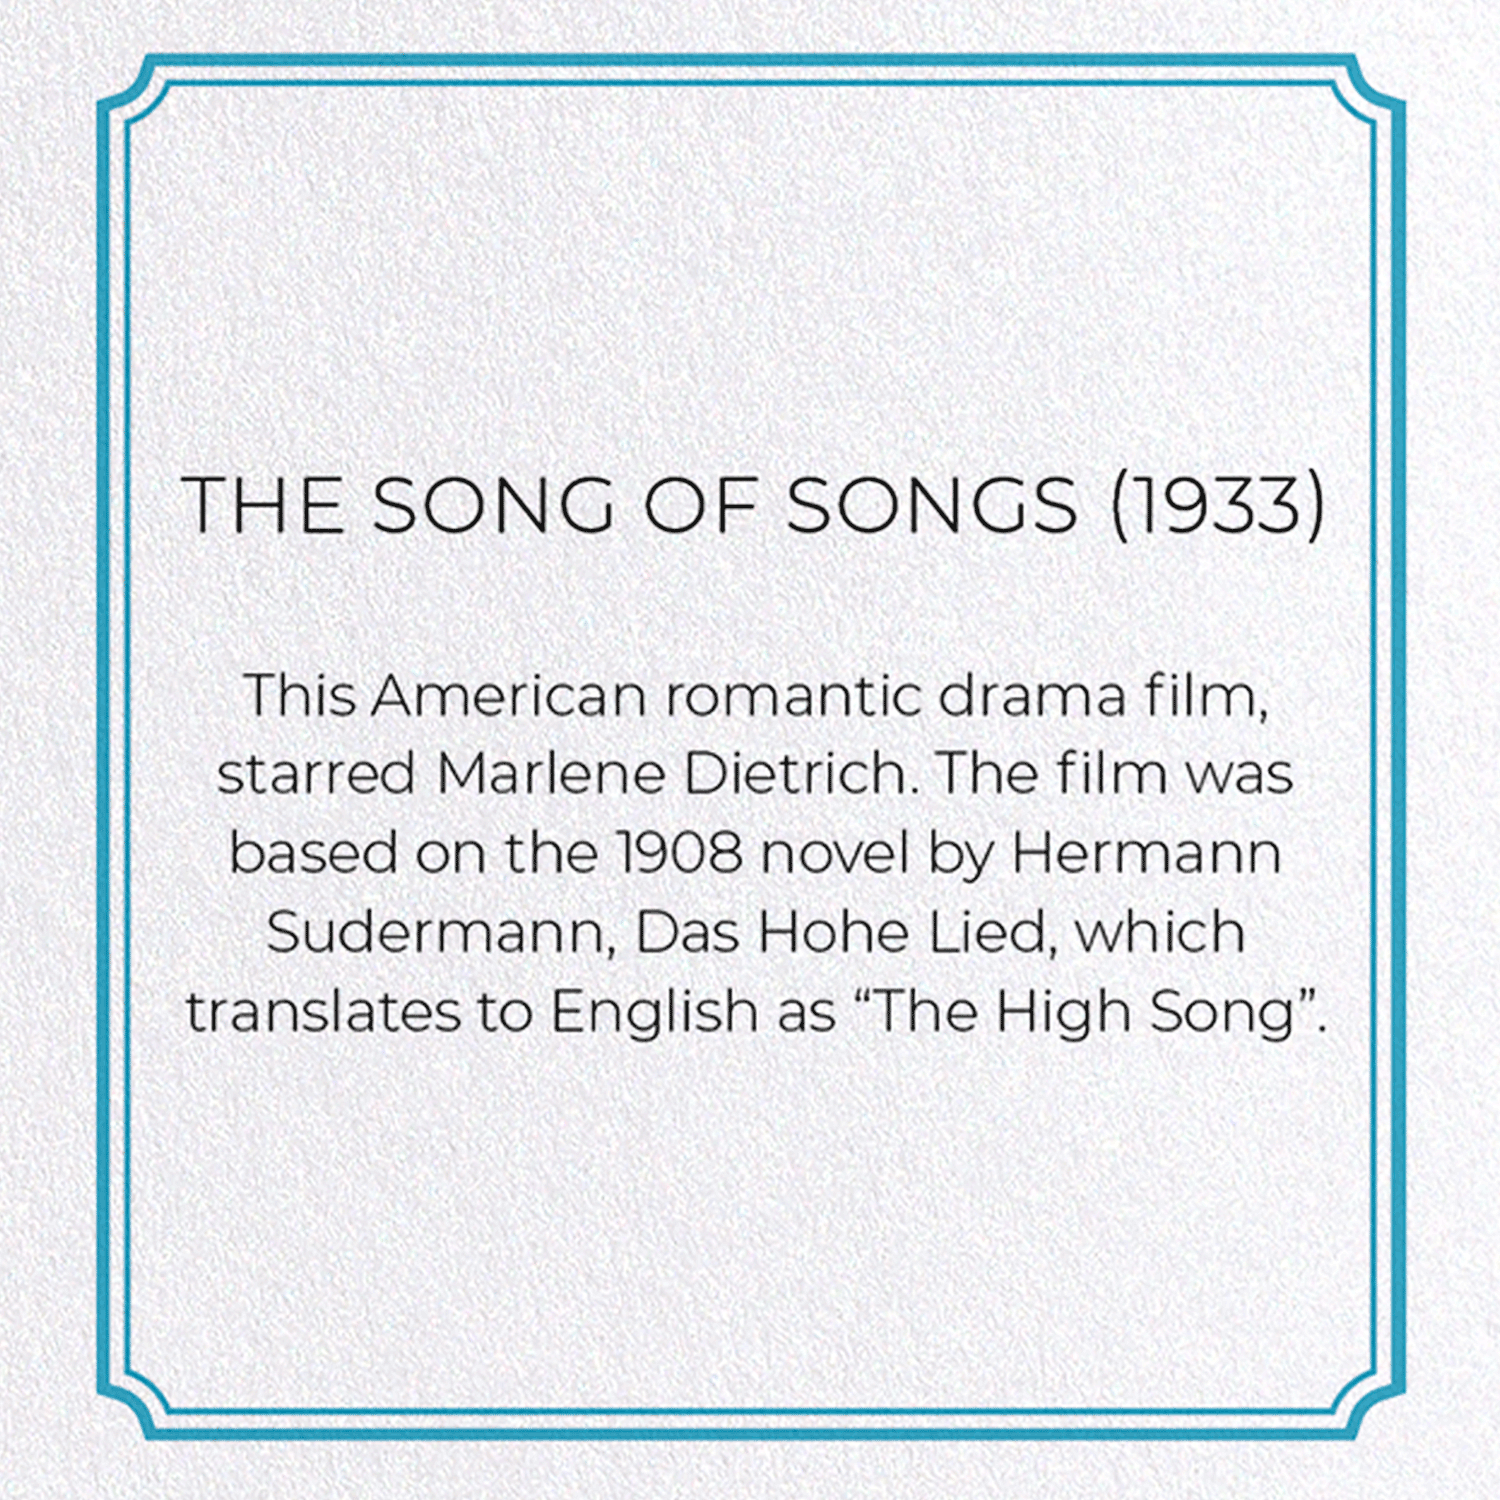 THE SONG OF SONGS (1933): 8xCards